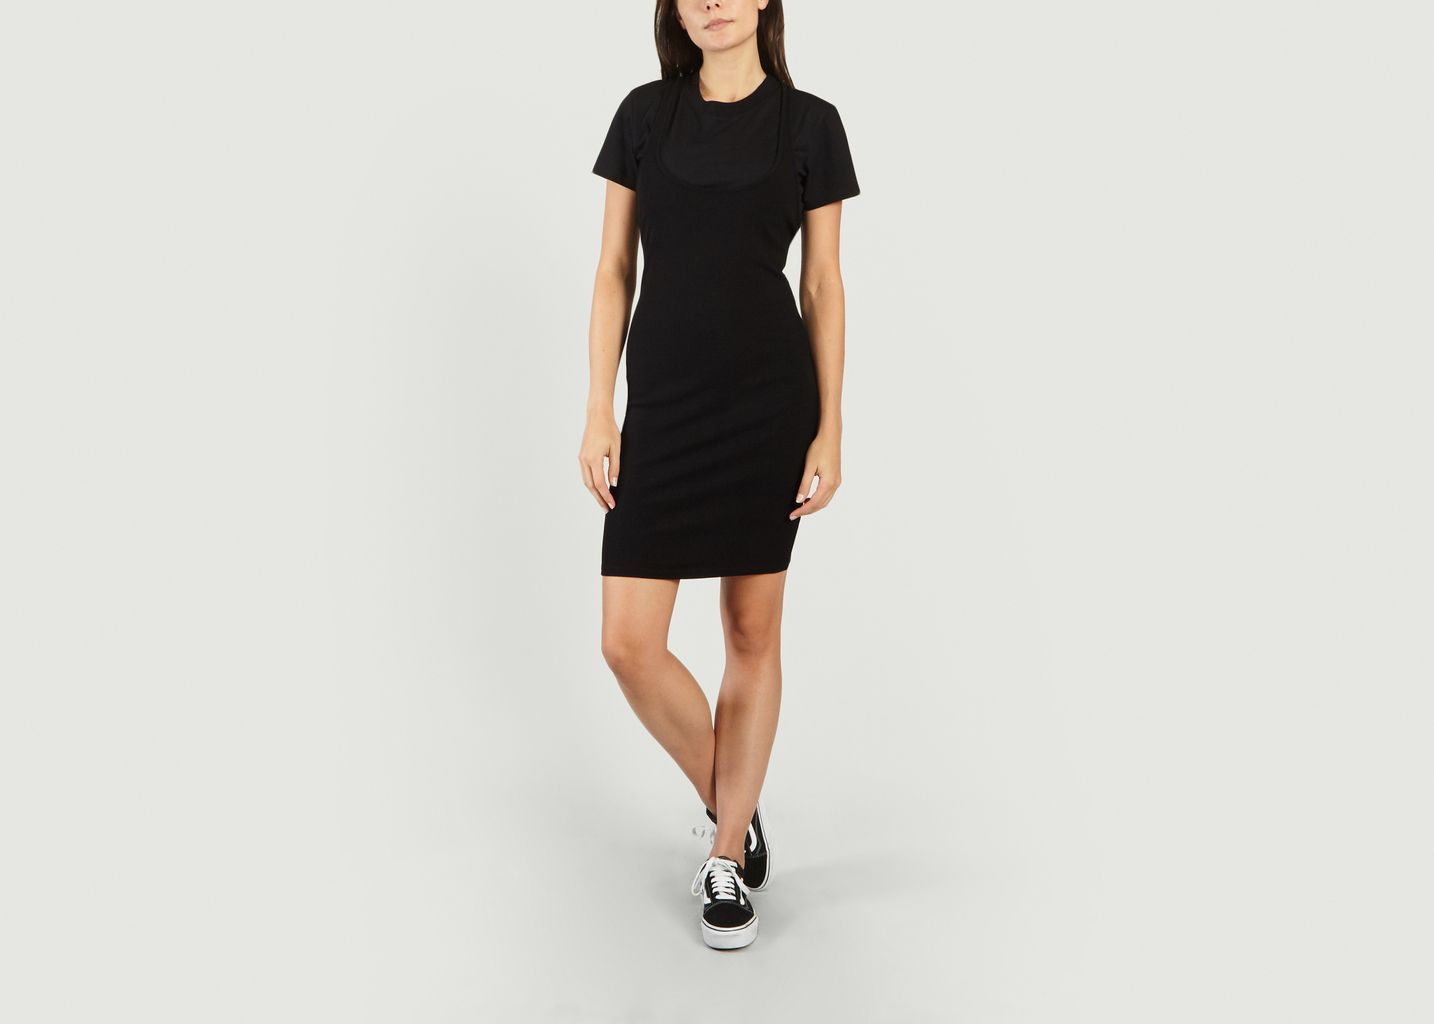 Sale Double Lined T Shirt Dress Black T By Alexander Wang At 50